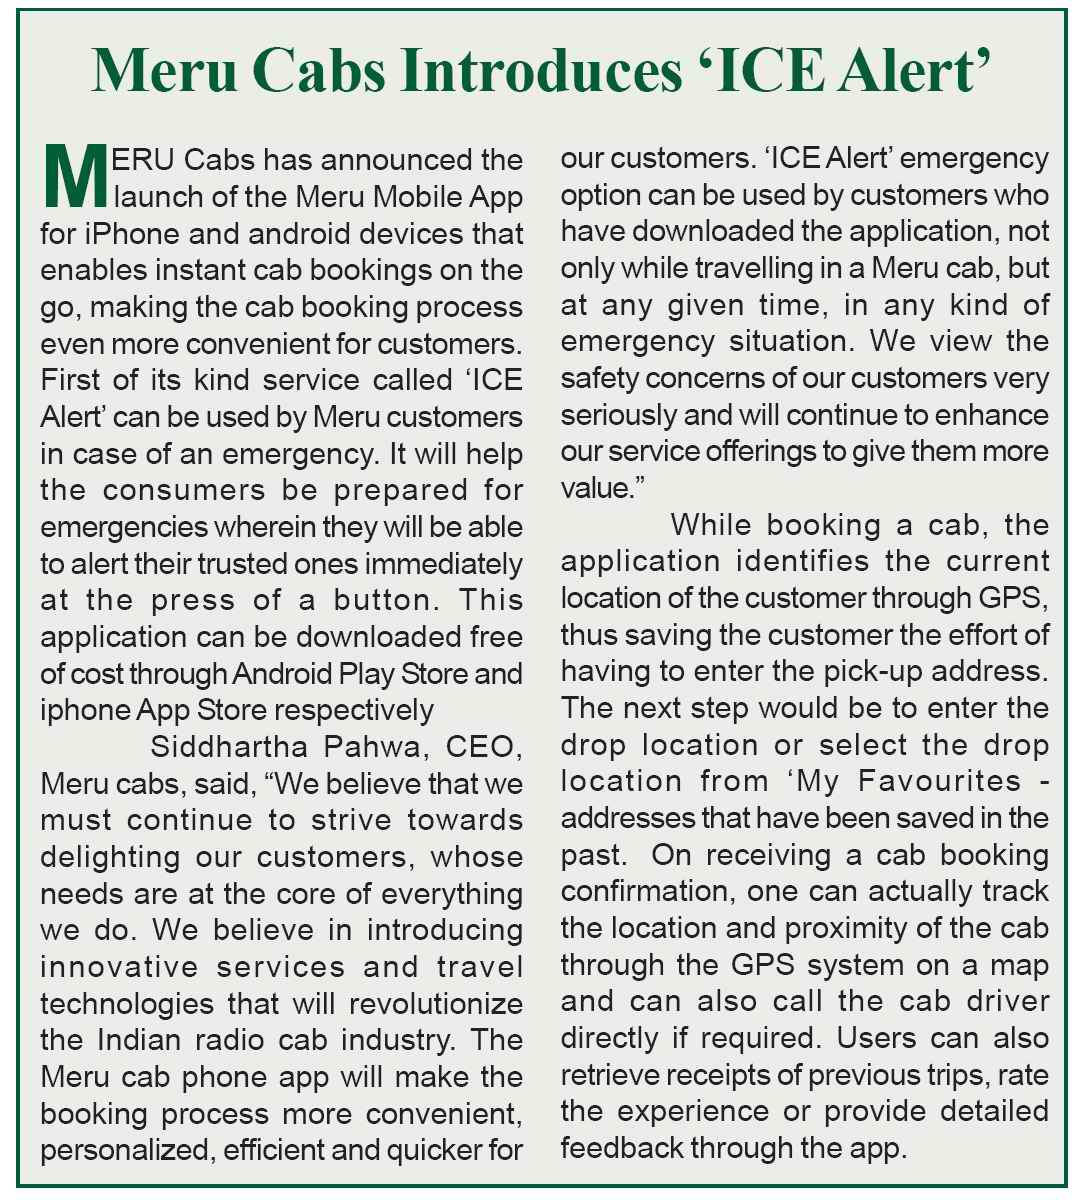 Meru Cabs – Meru Cabs Introduces 'ICE Alerts', Safari India Safari News